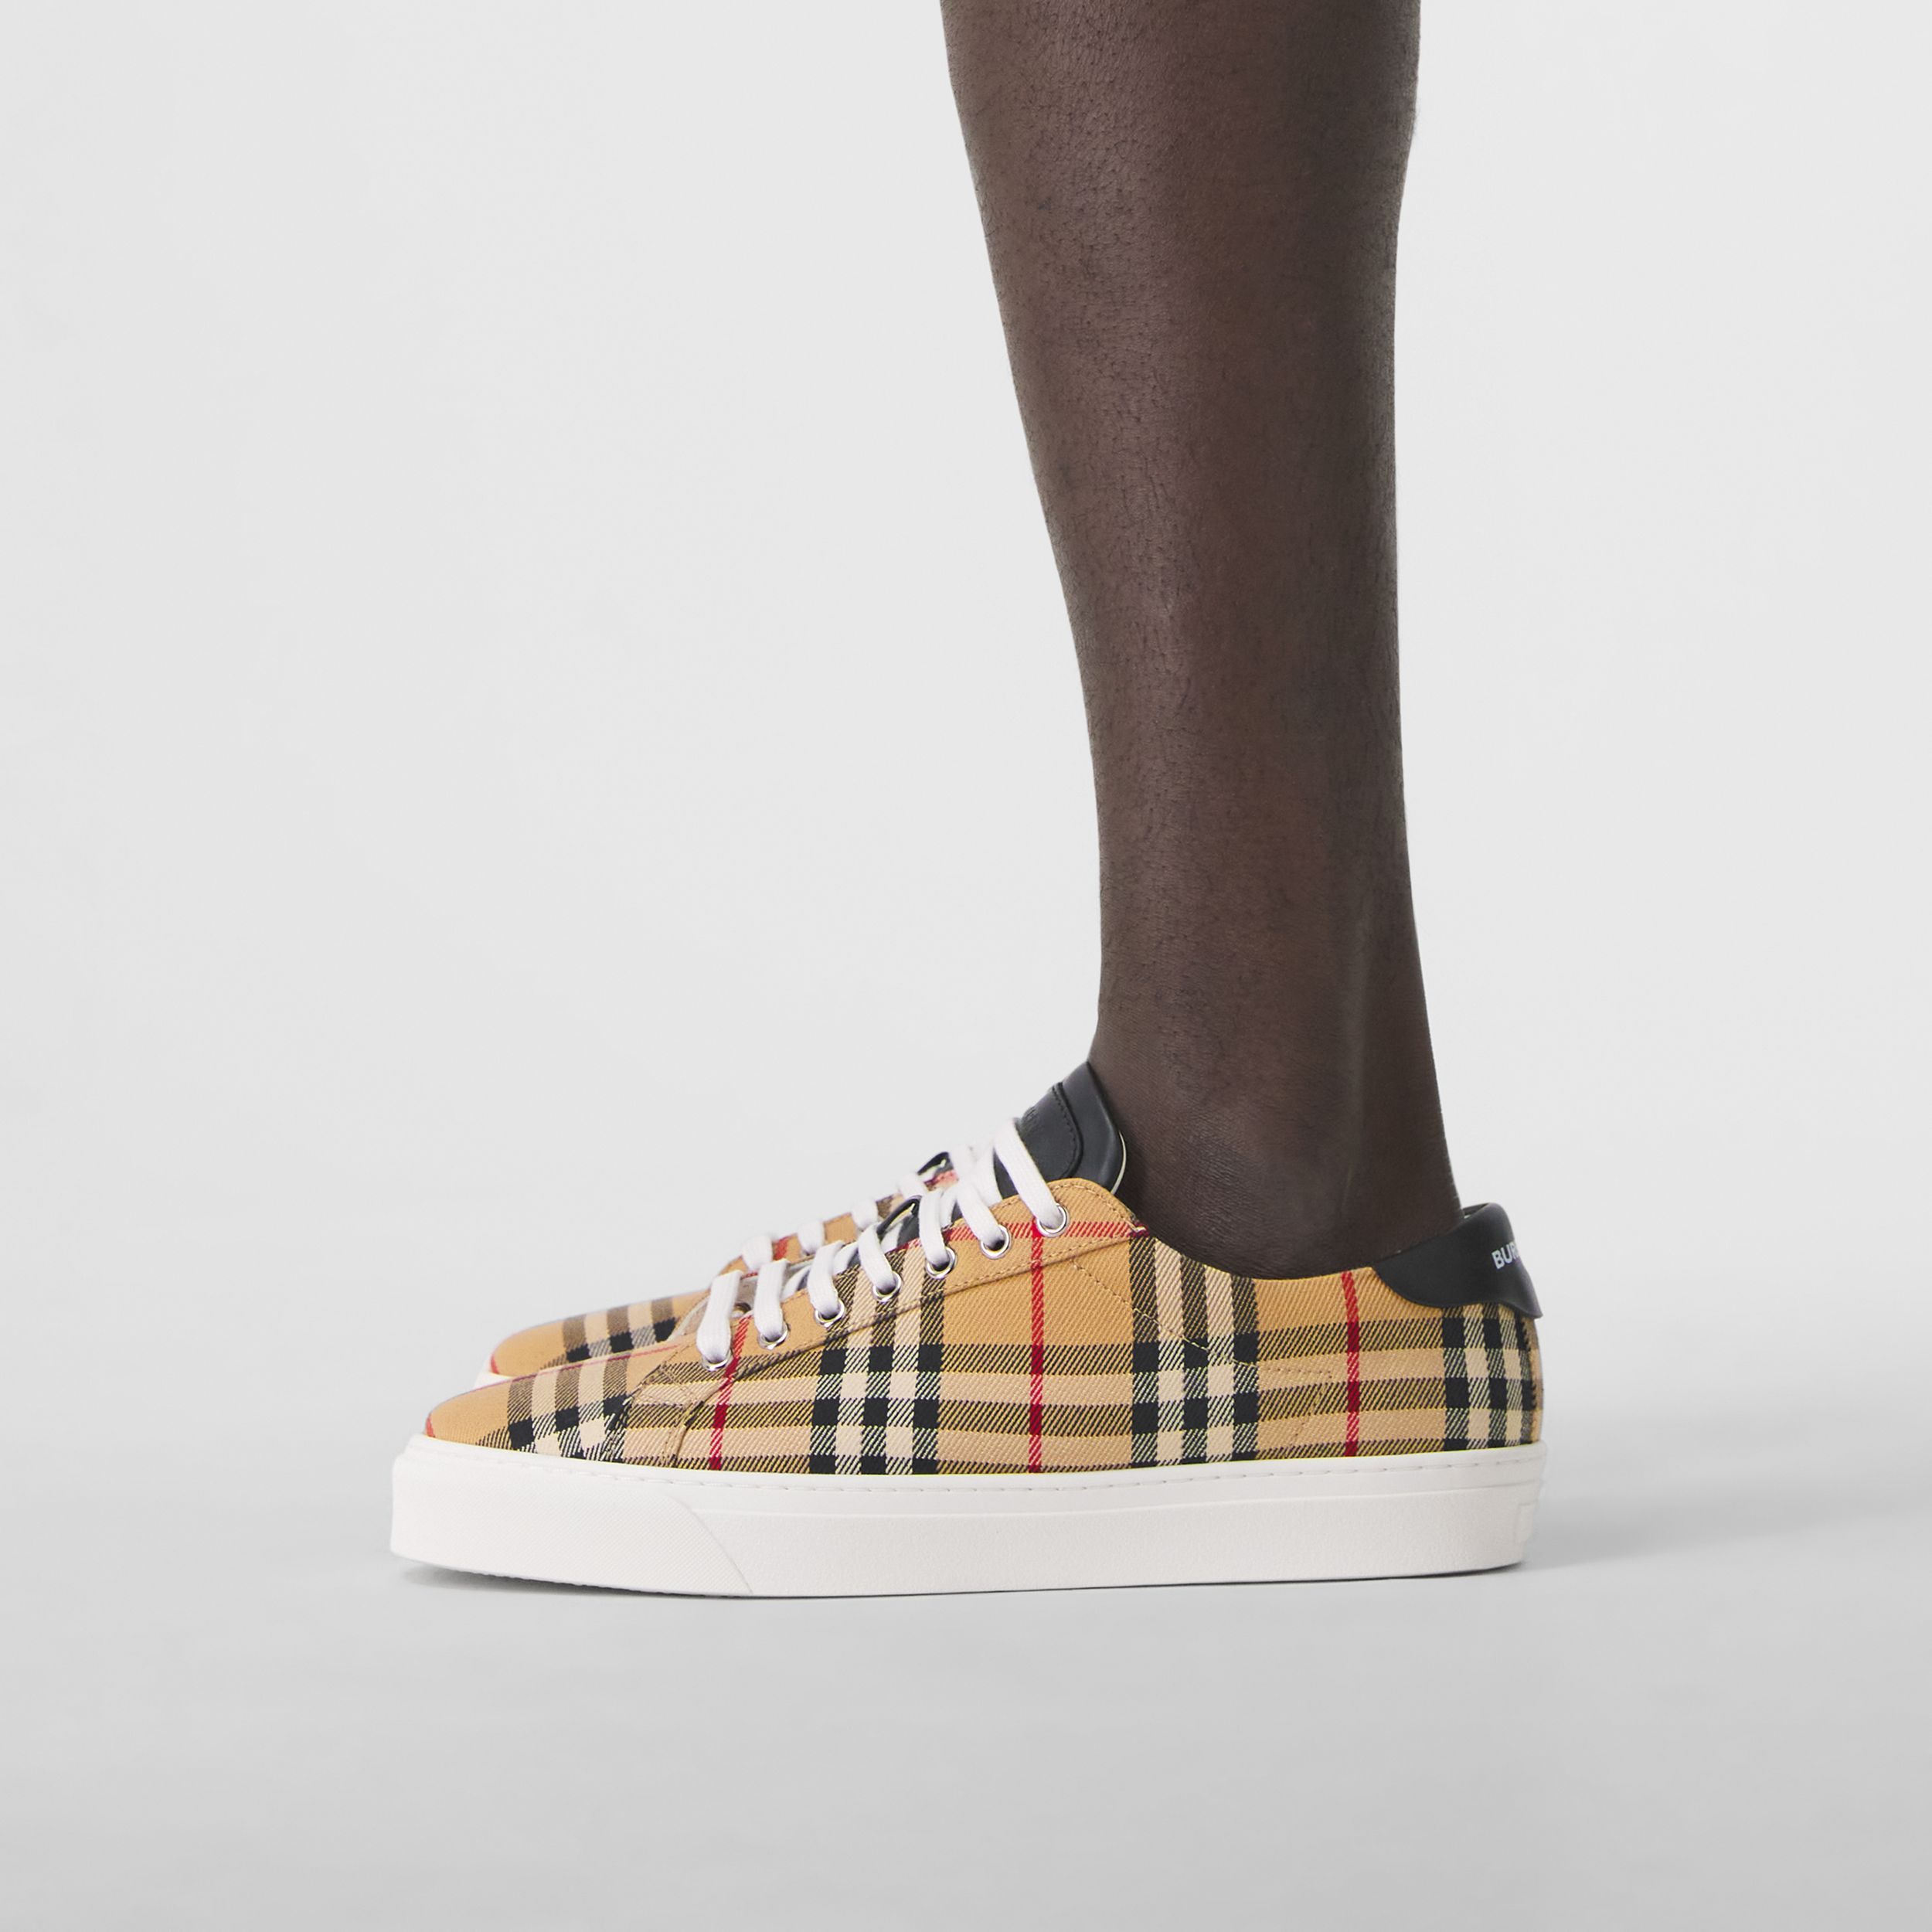 Bio-based Sole Vintage Check and Leather Sneakers in Archive Beige - Men | Burberry Canada - 3